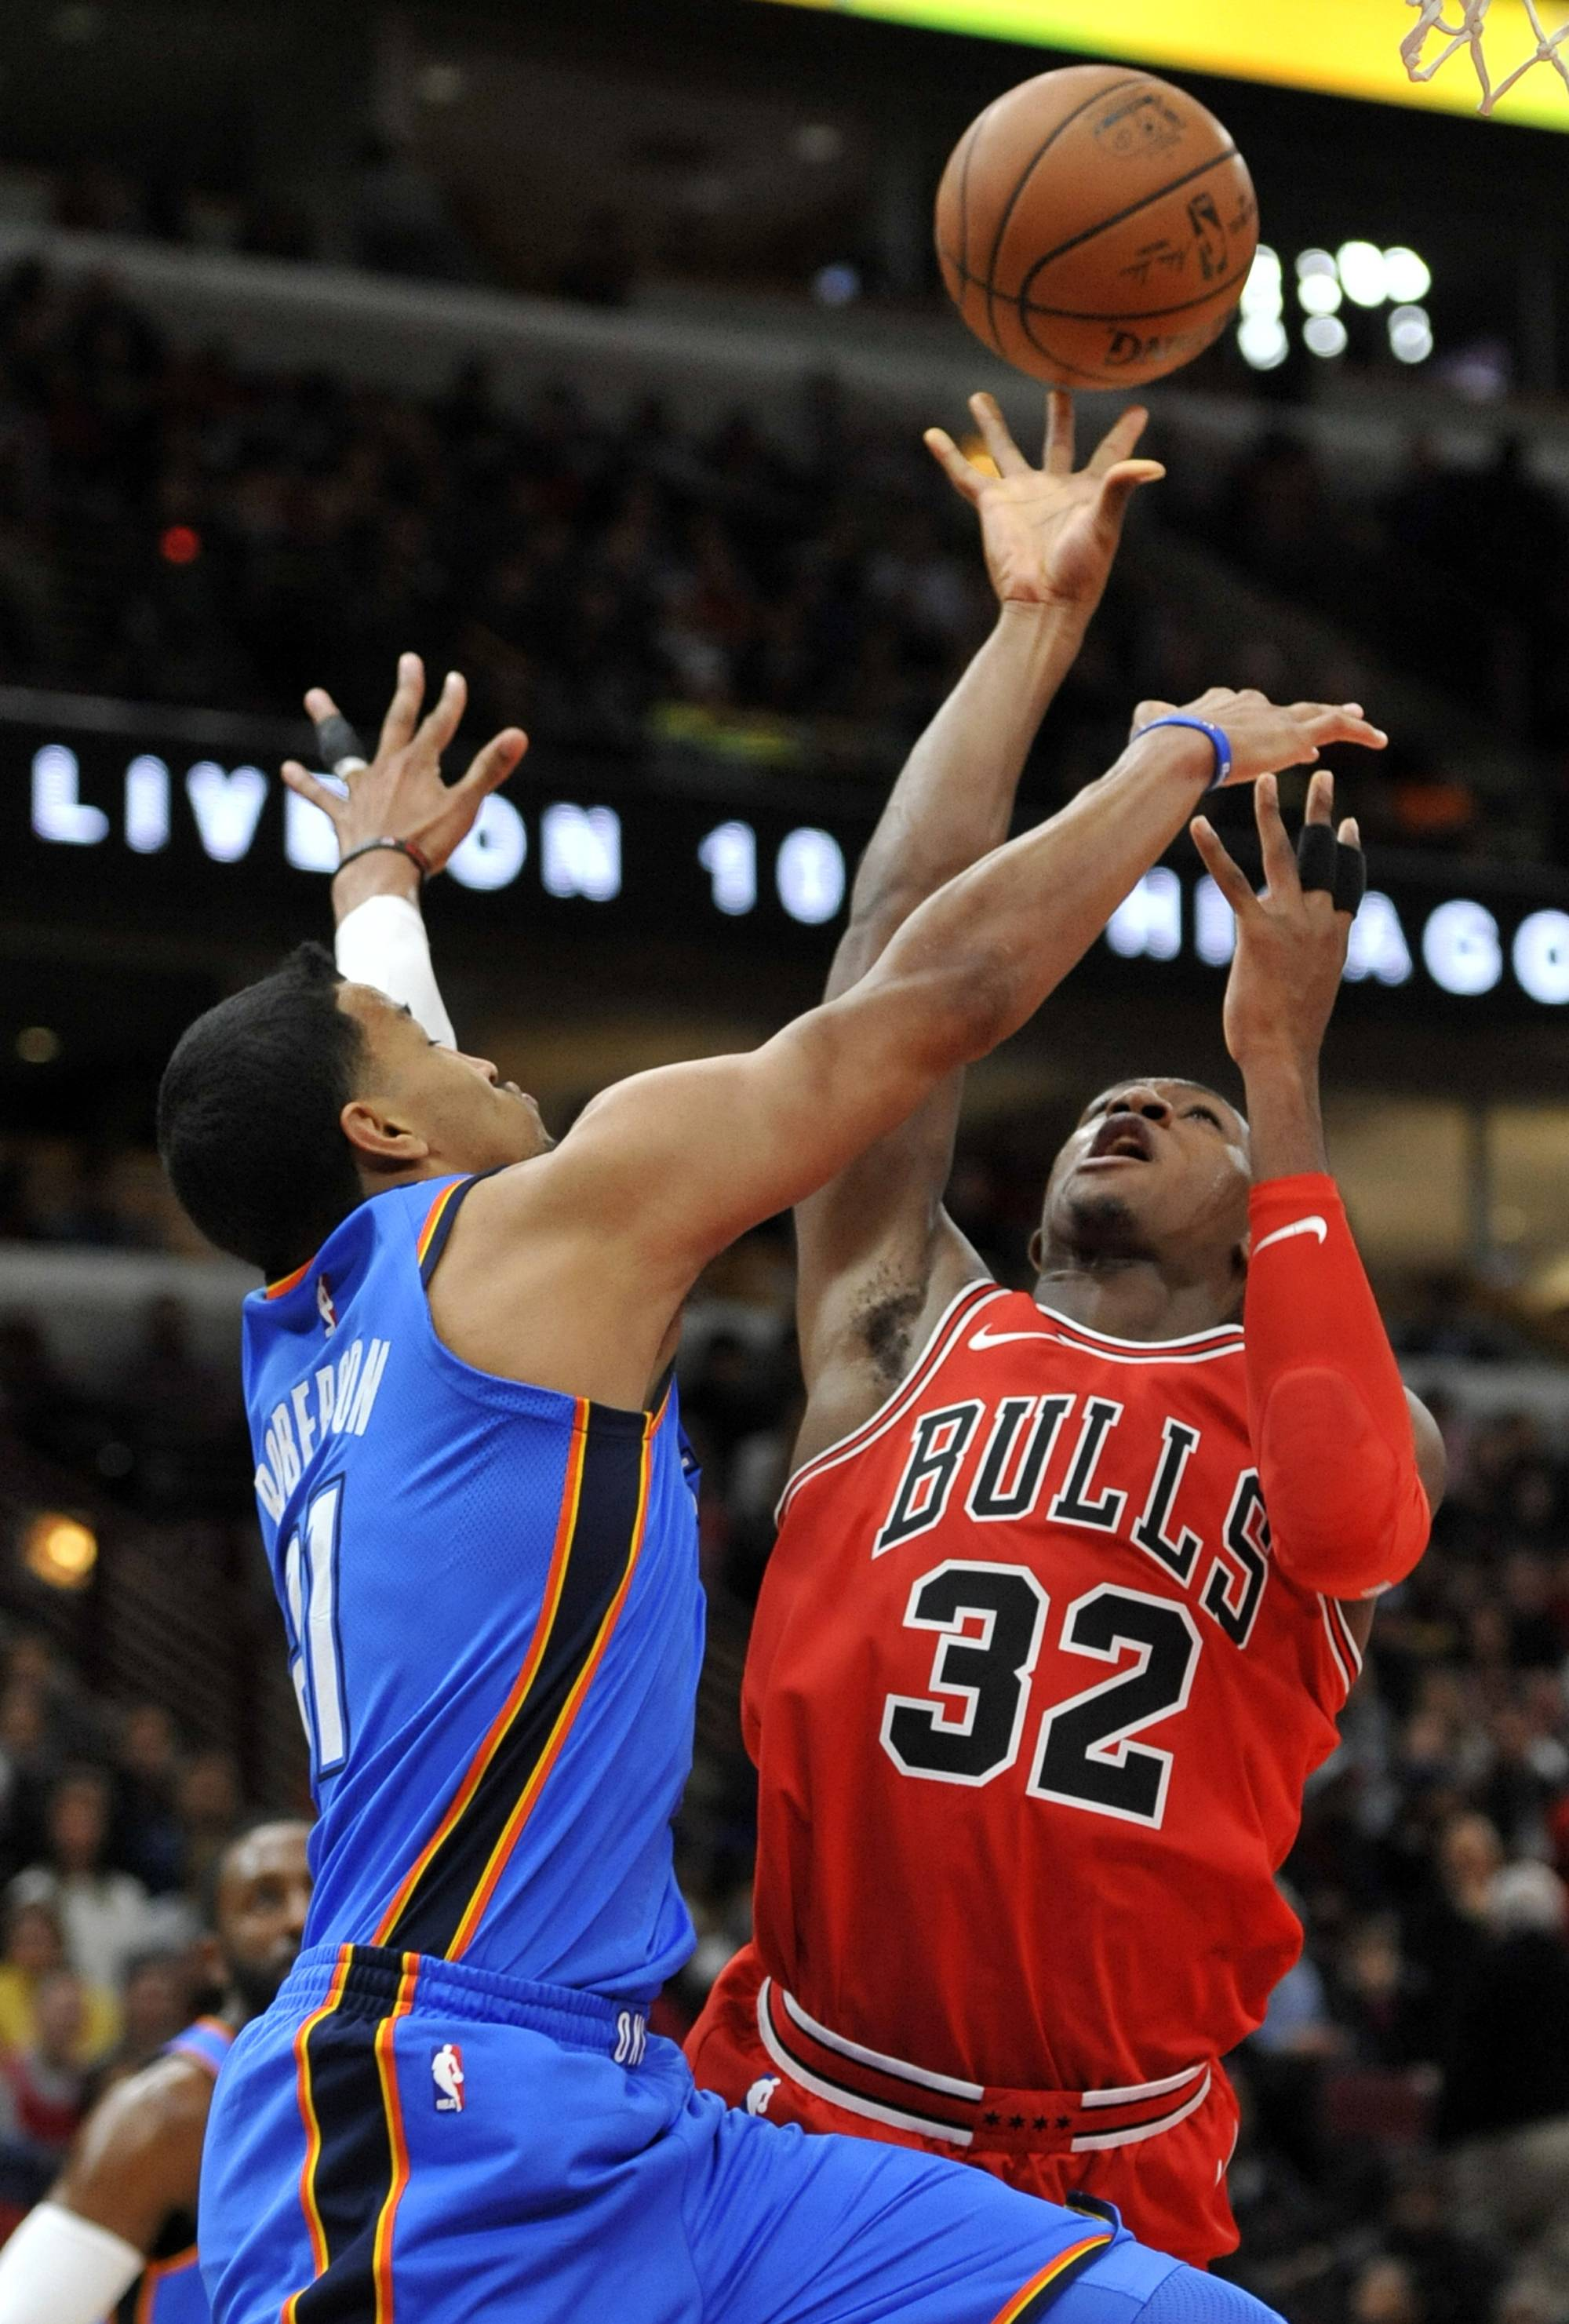 Chicago Bulls' Kris Dunn (32) goes up to shoot against Oklahoma City Thunder's Andre Roberson (21) during the first half of an NBA basketball game Saturday, Oct. 28, 2017, in Chicago. (AP Photo/Paul Beaty)